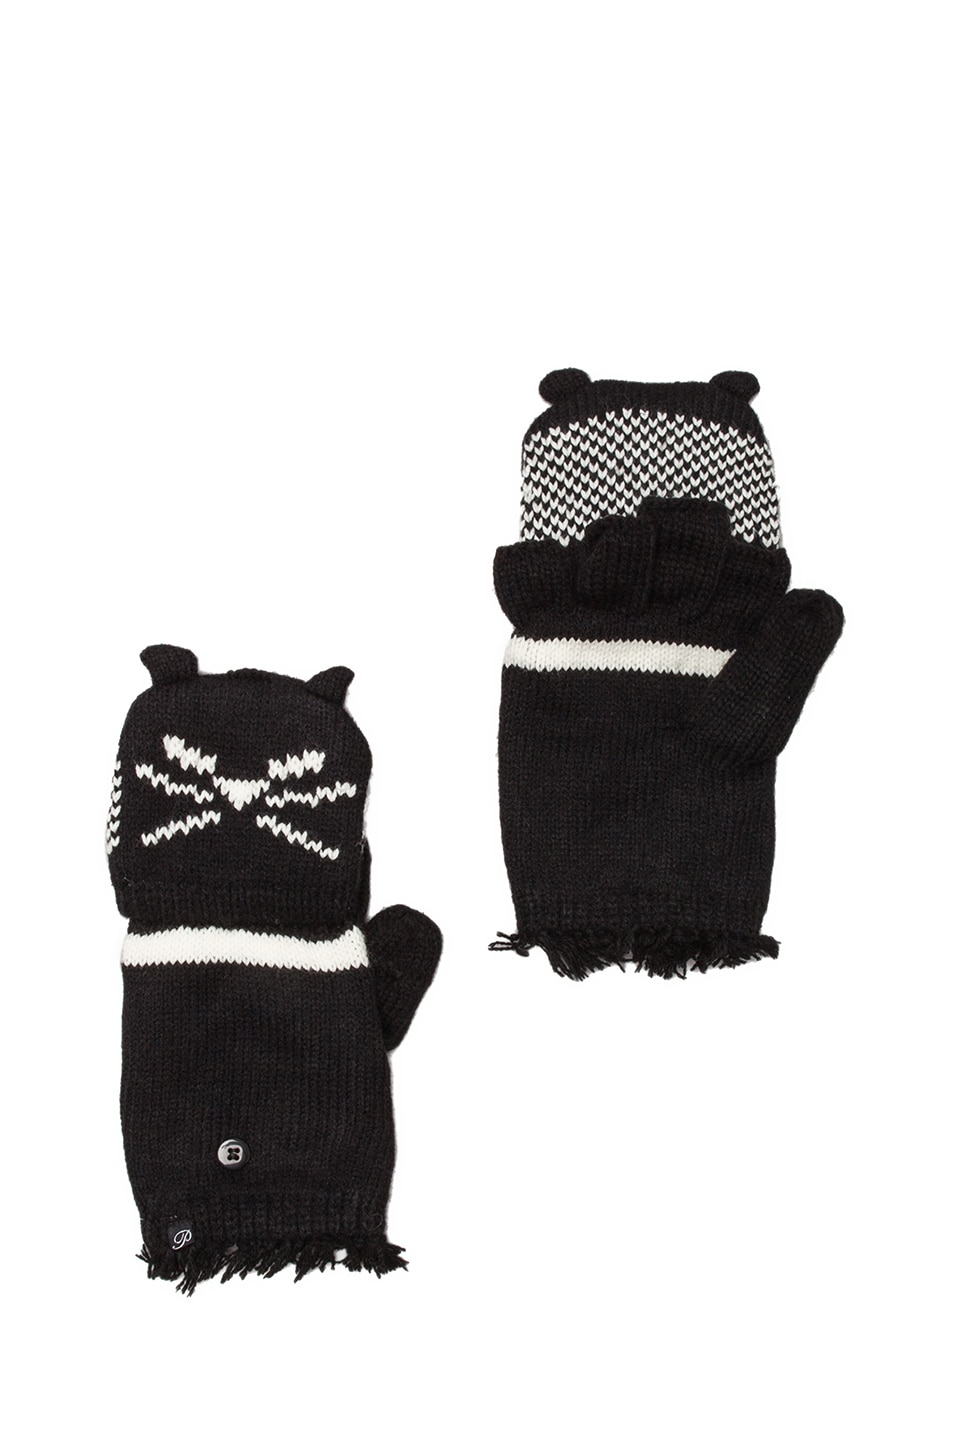 Plush Cat Texting Mittens in Black/White